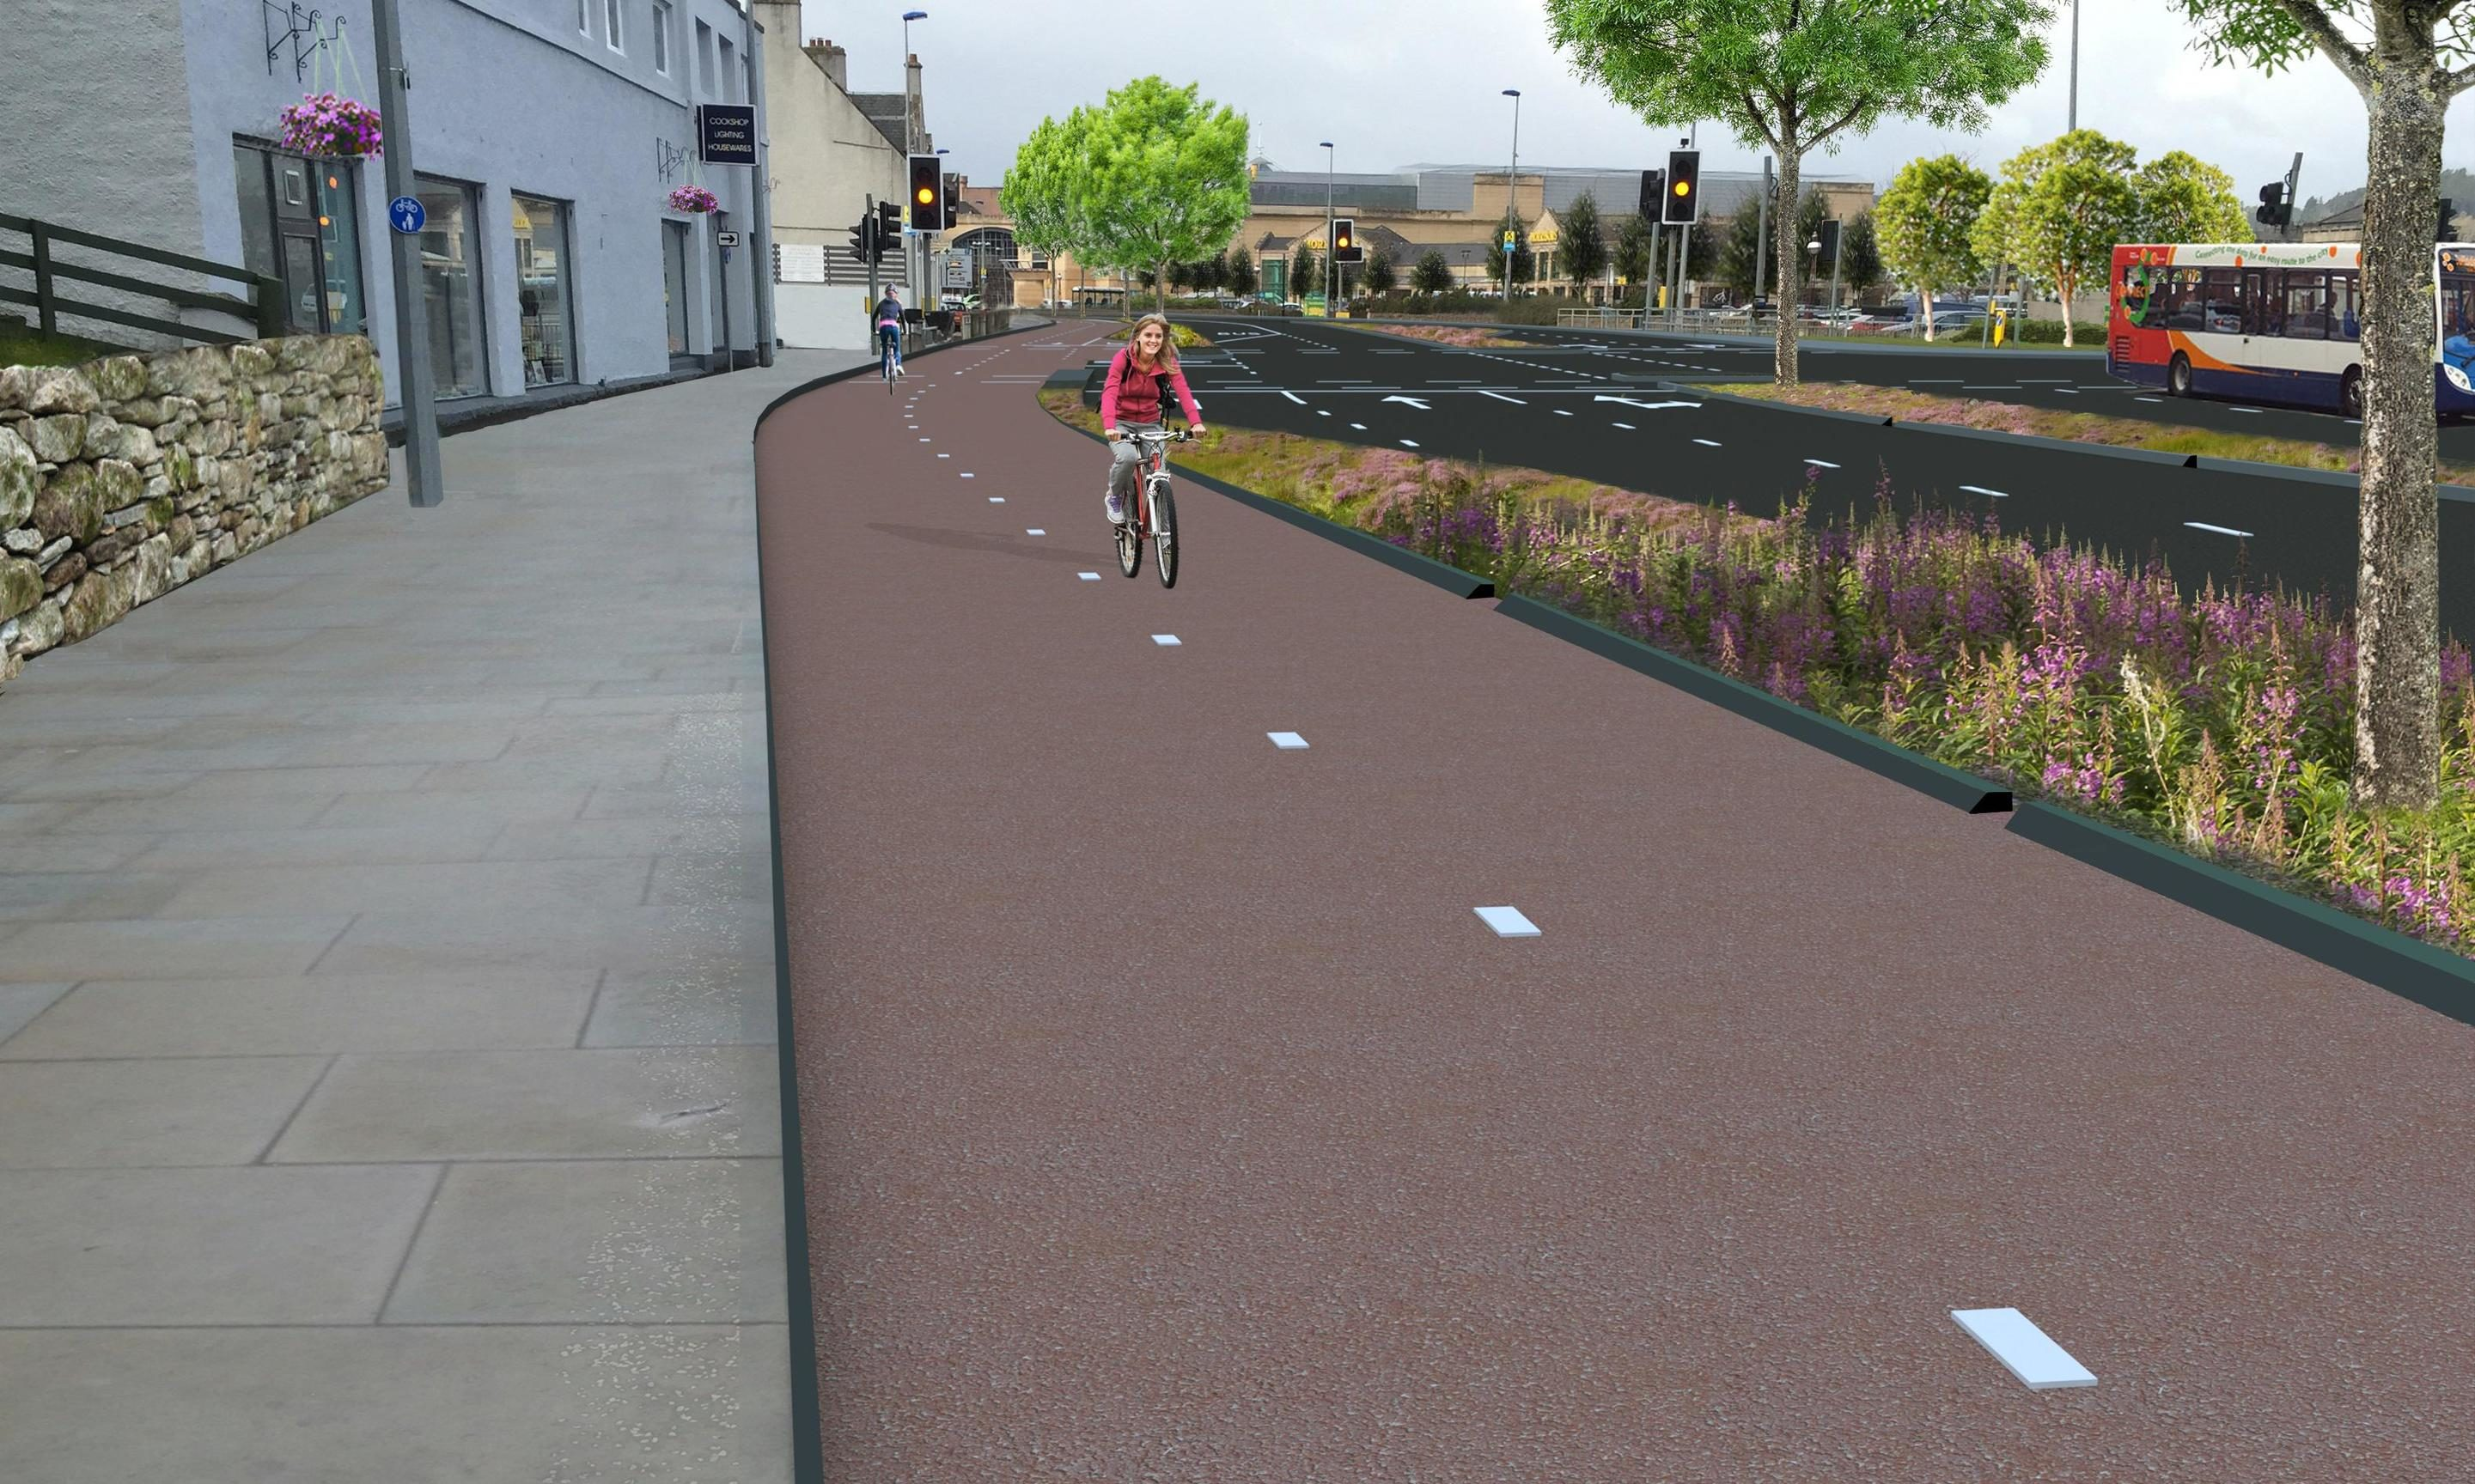 An artist's impression of what the Active Travel scheme along Millburn Road could look like.